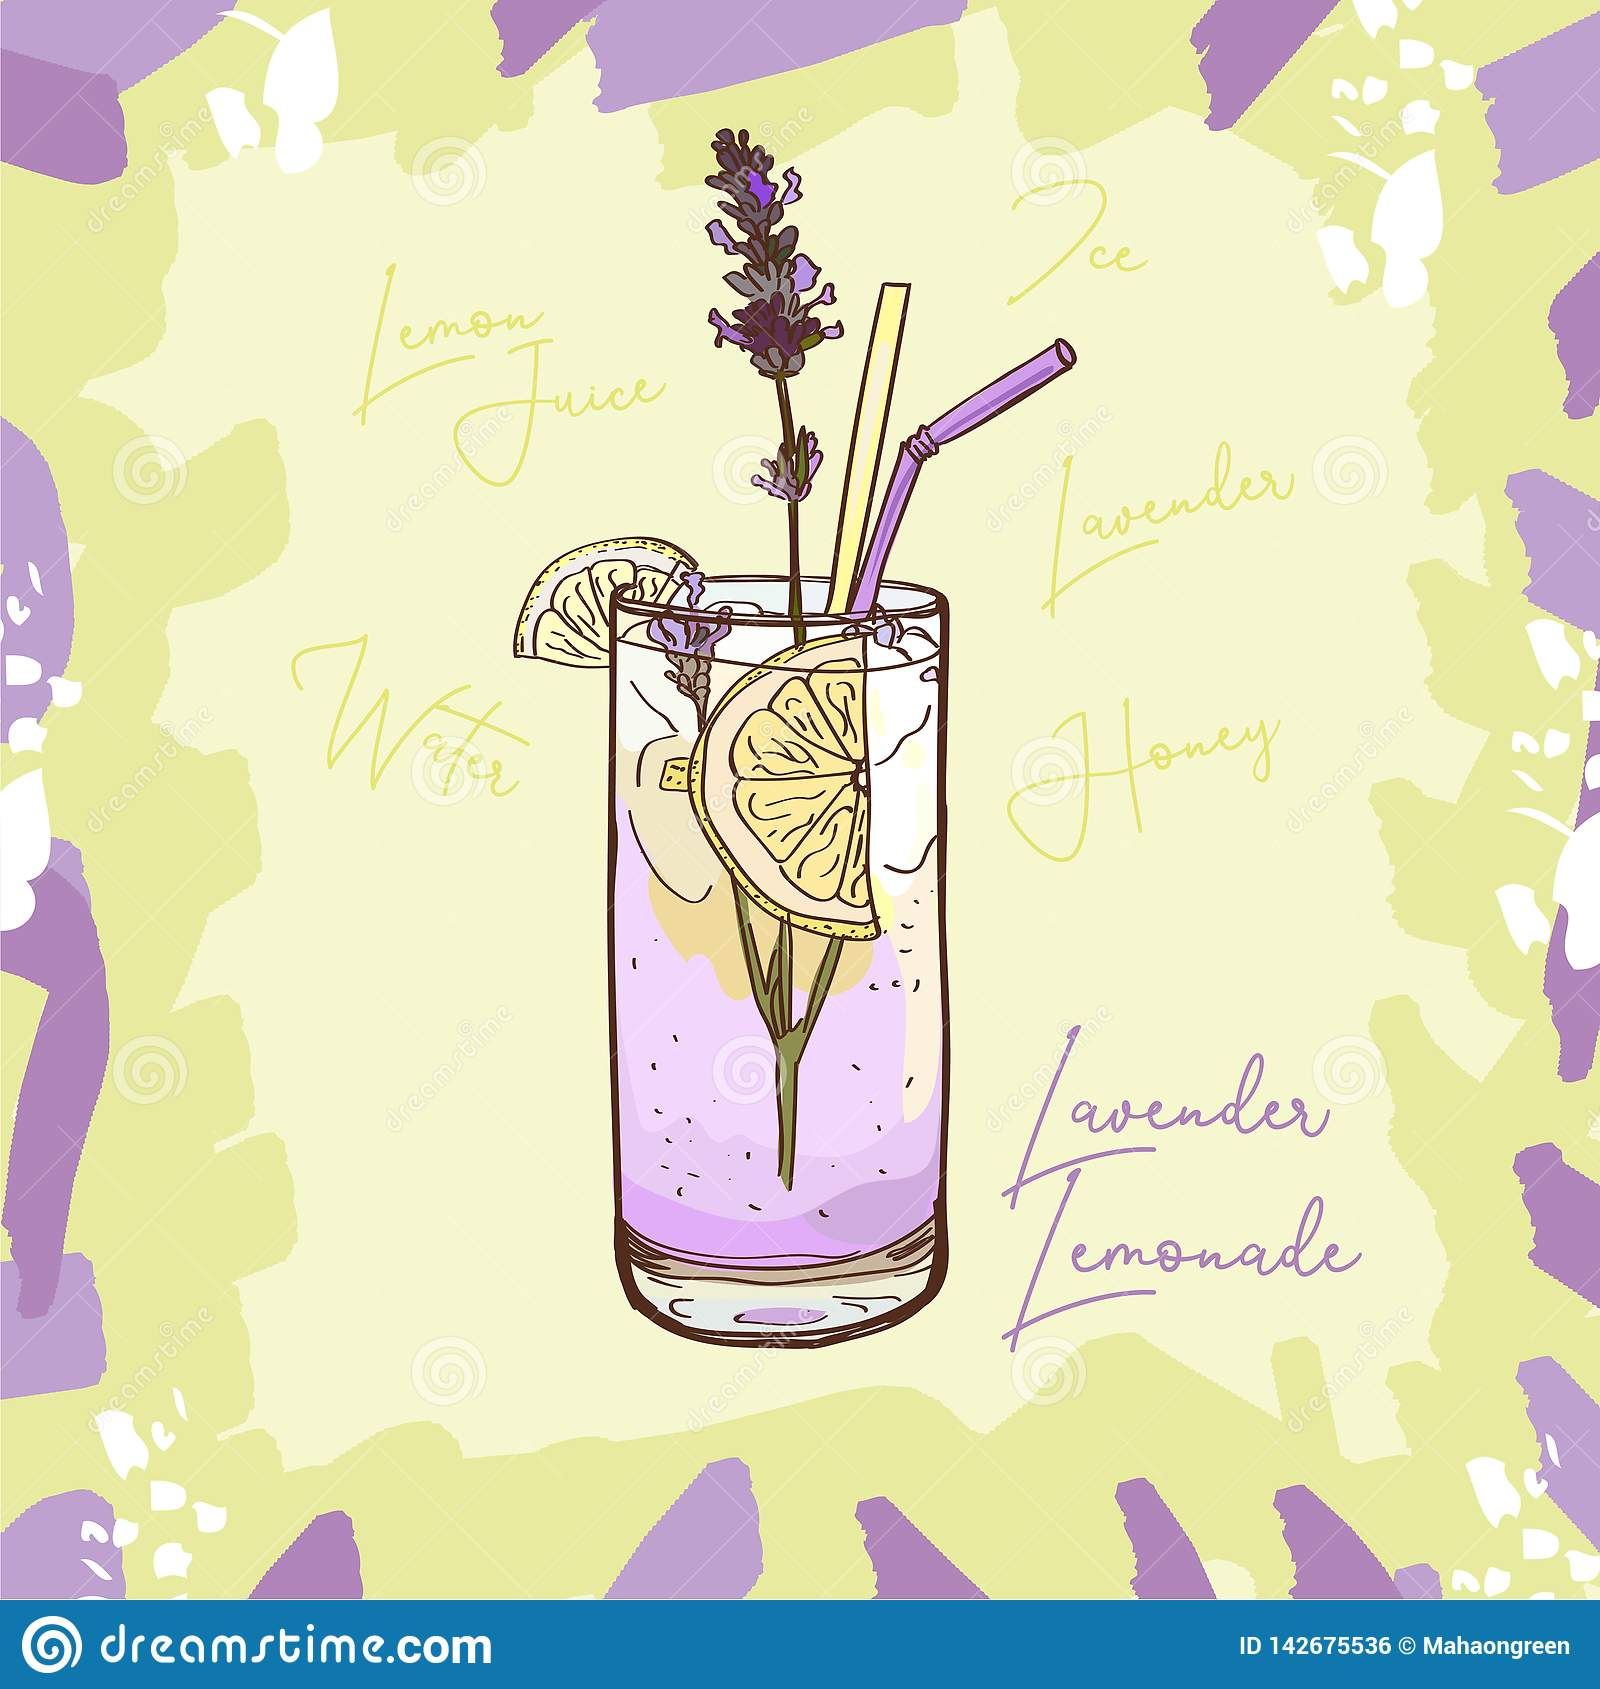 Lavender Lemonade Homemade Classic In Glass Cup With